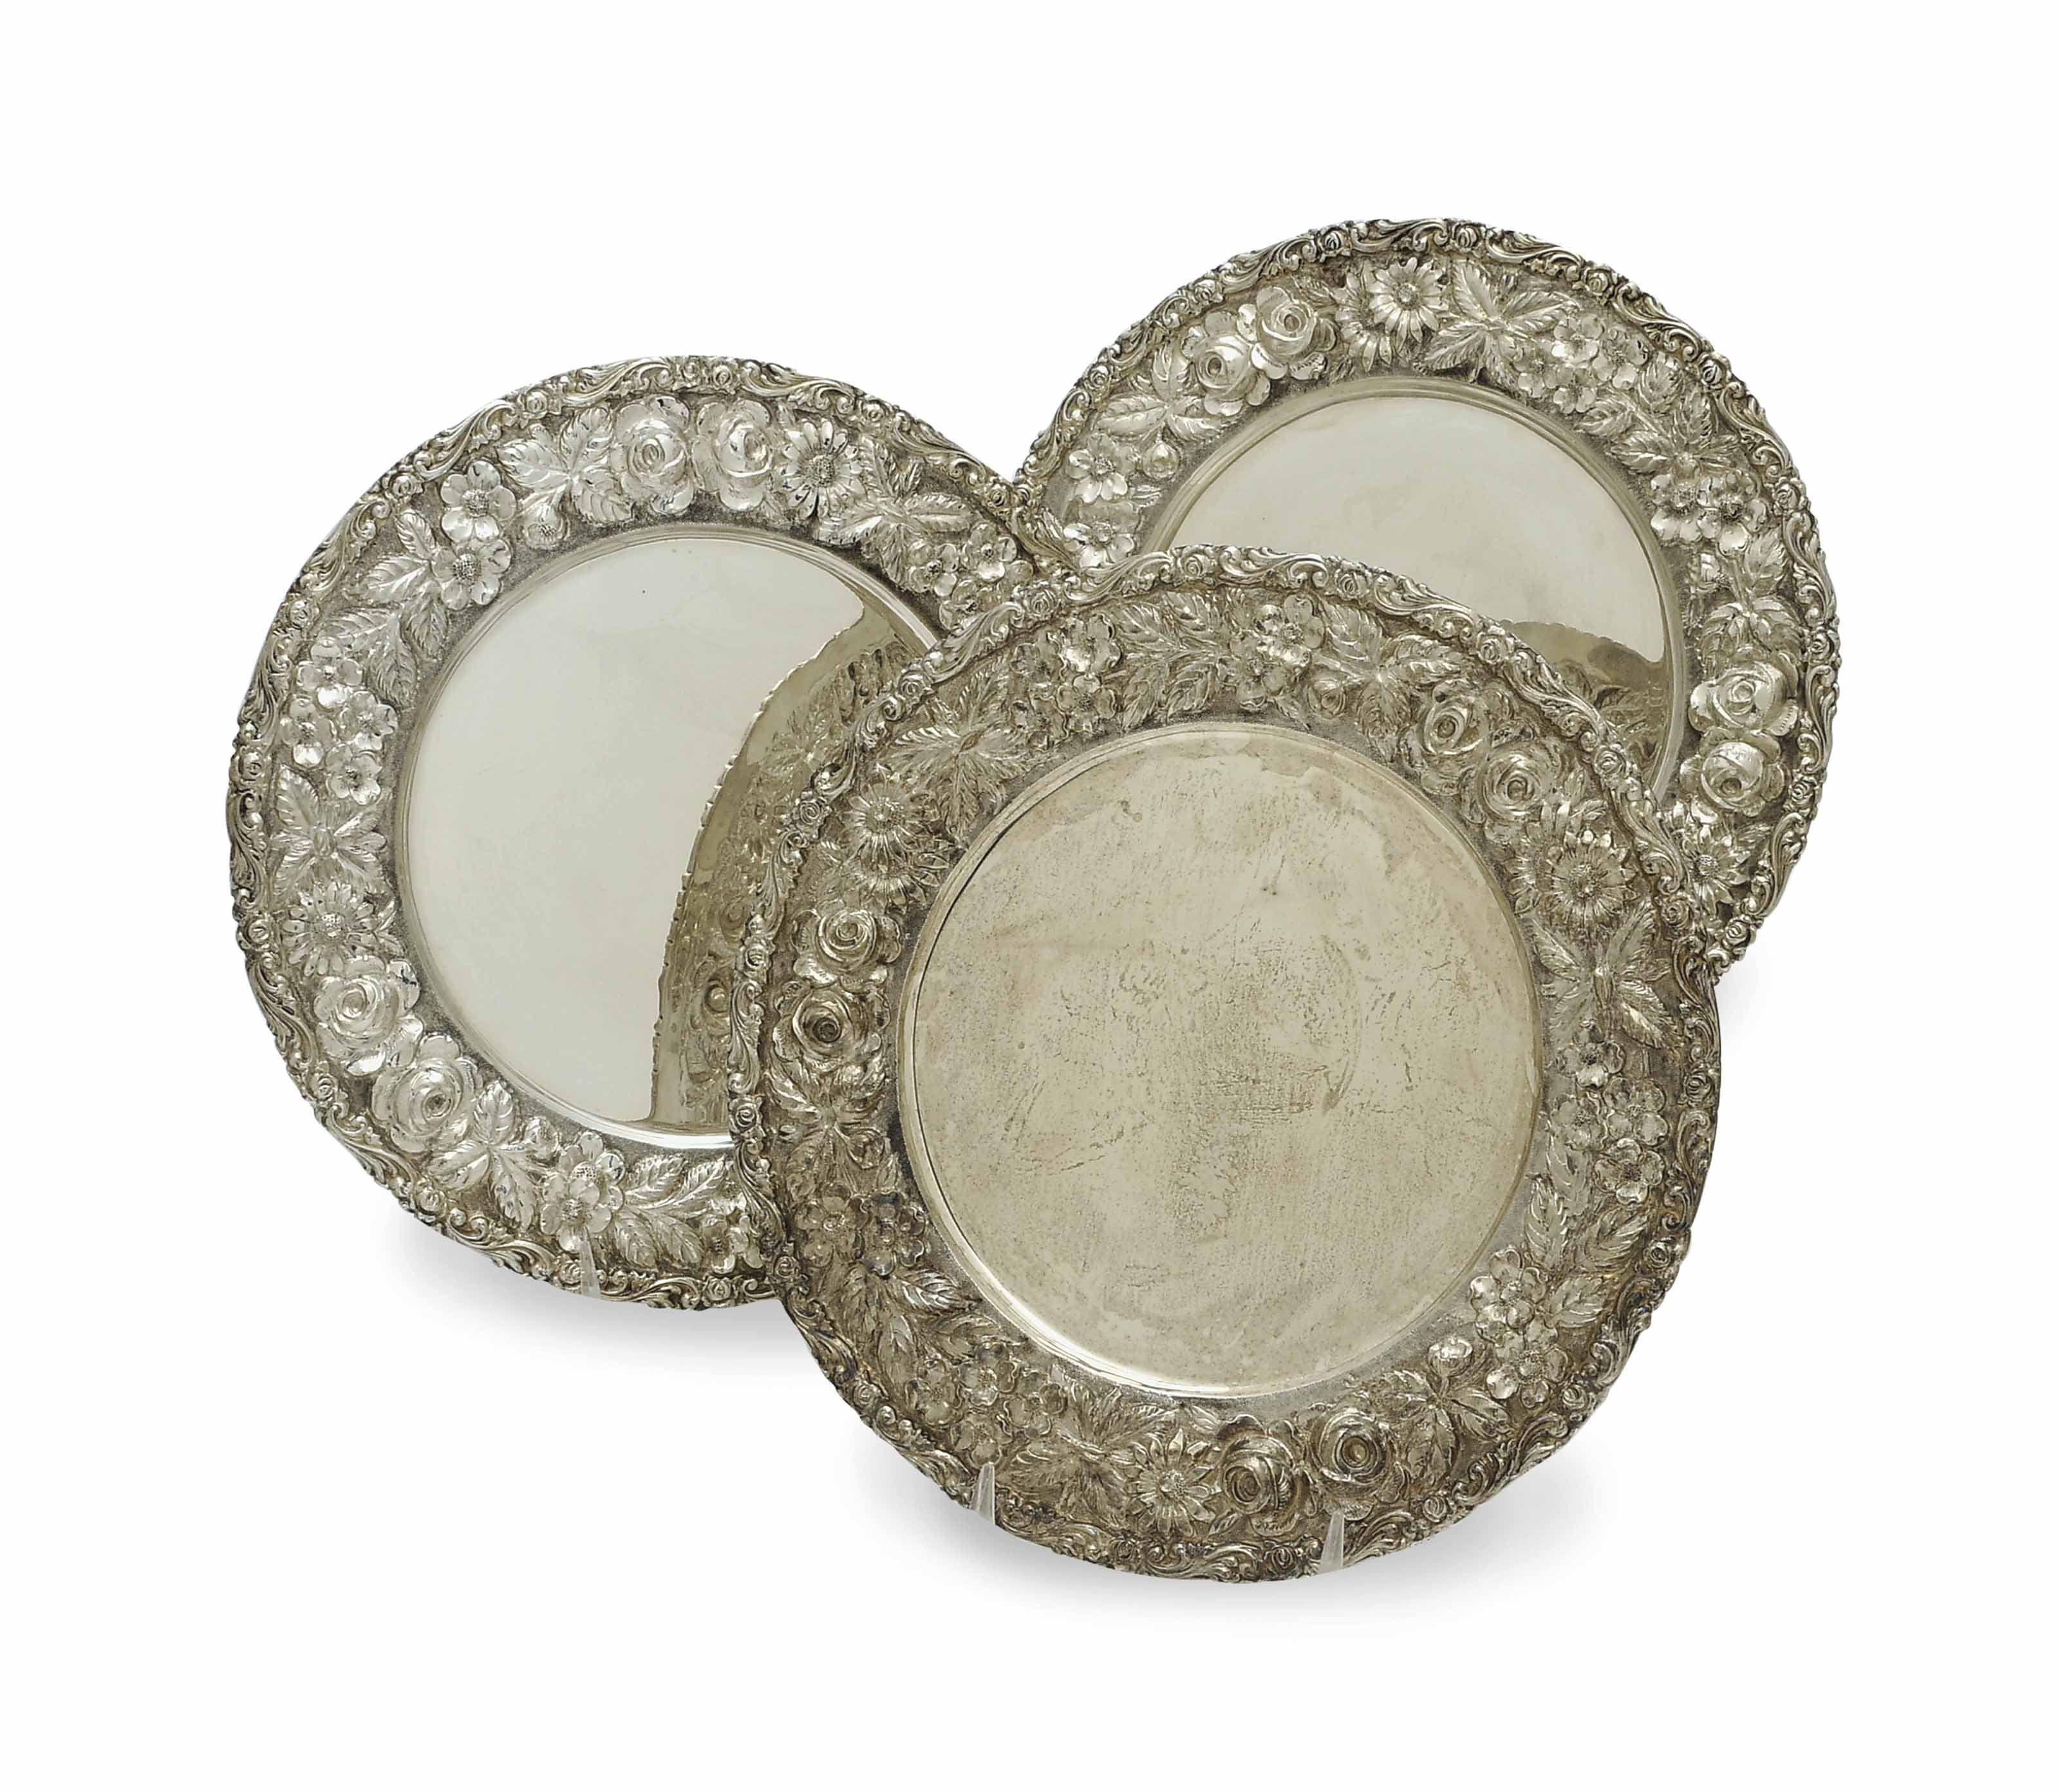 A SET OF TWELVE AMERICAN REPOUSSE SILVER PLACE PLATES,